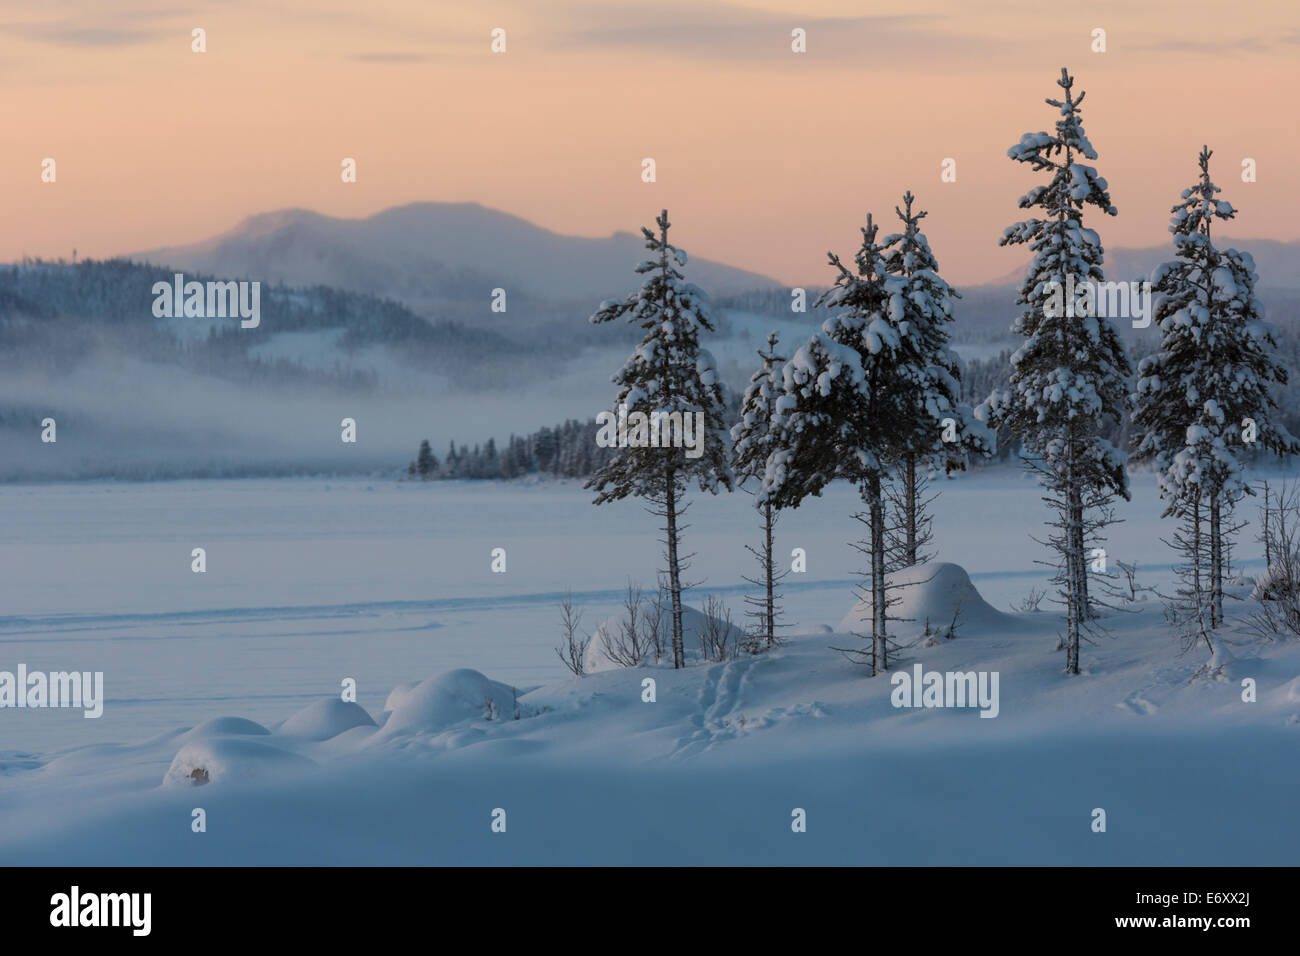 Winterlandscape in Kvikkjokk, Sweden, Lapland with mountains in background and snowy spruces - Stock Image